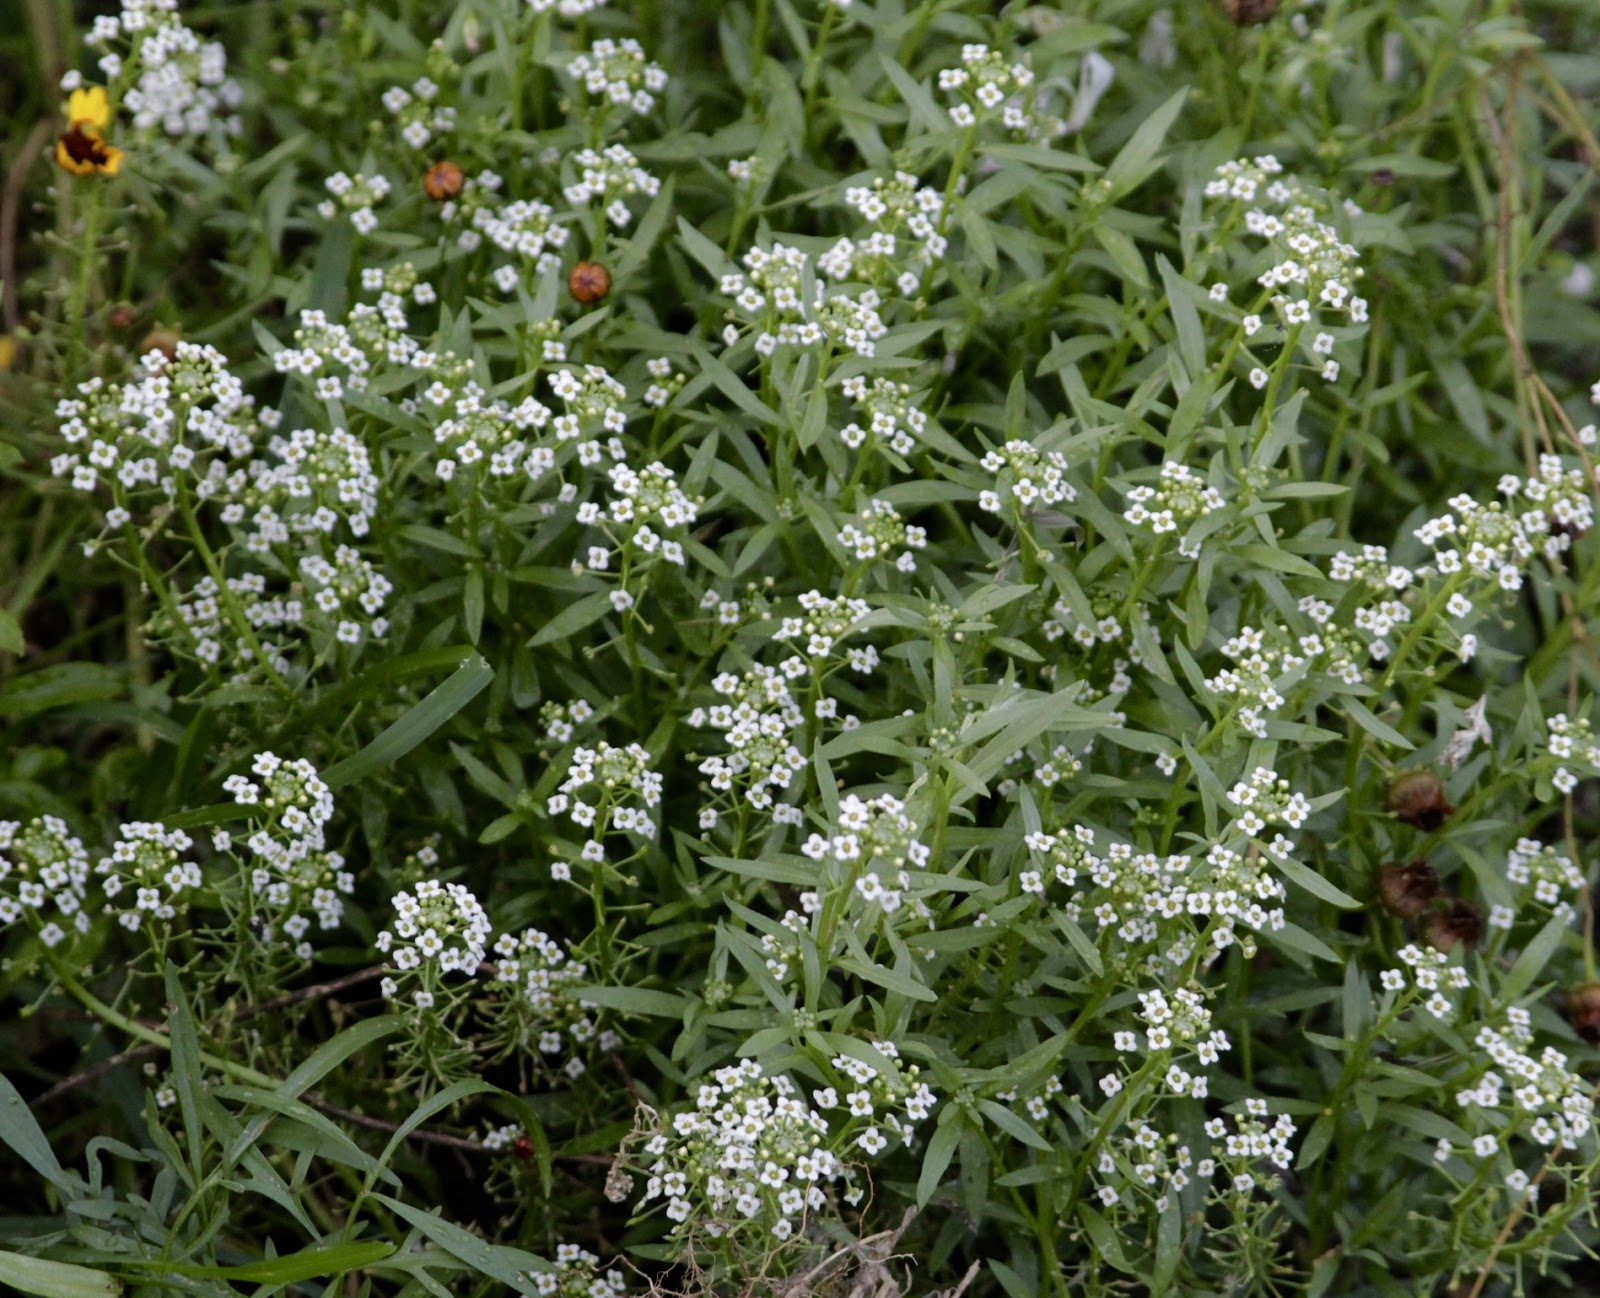 This Pretty Little White Flower Is Blooming In My Wildflower Bed I M Not Sure What It Called But Think Some Kind Of Alyssum